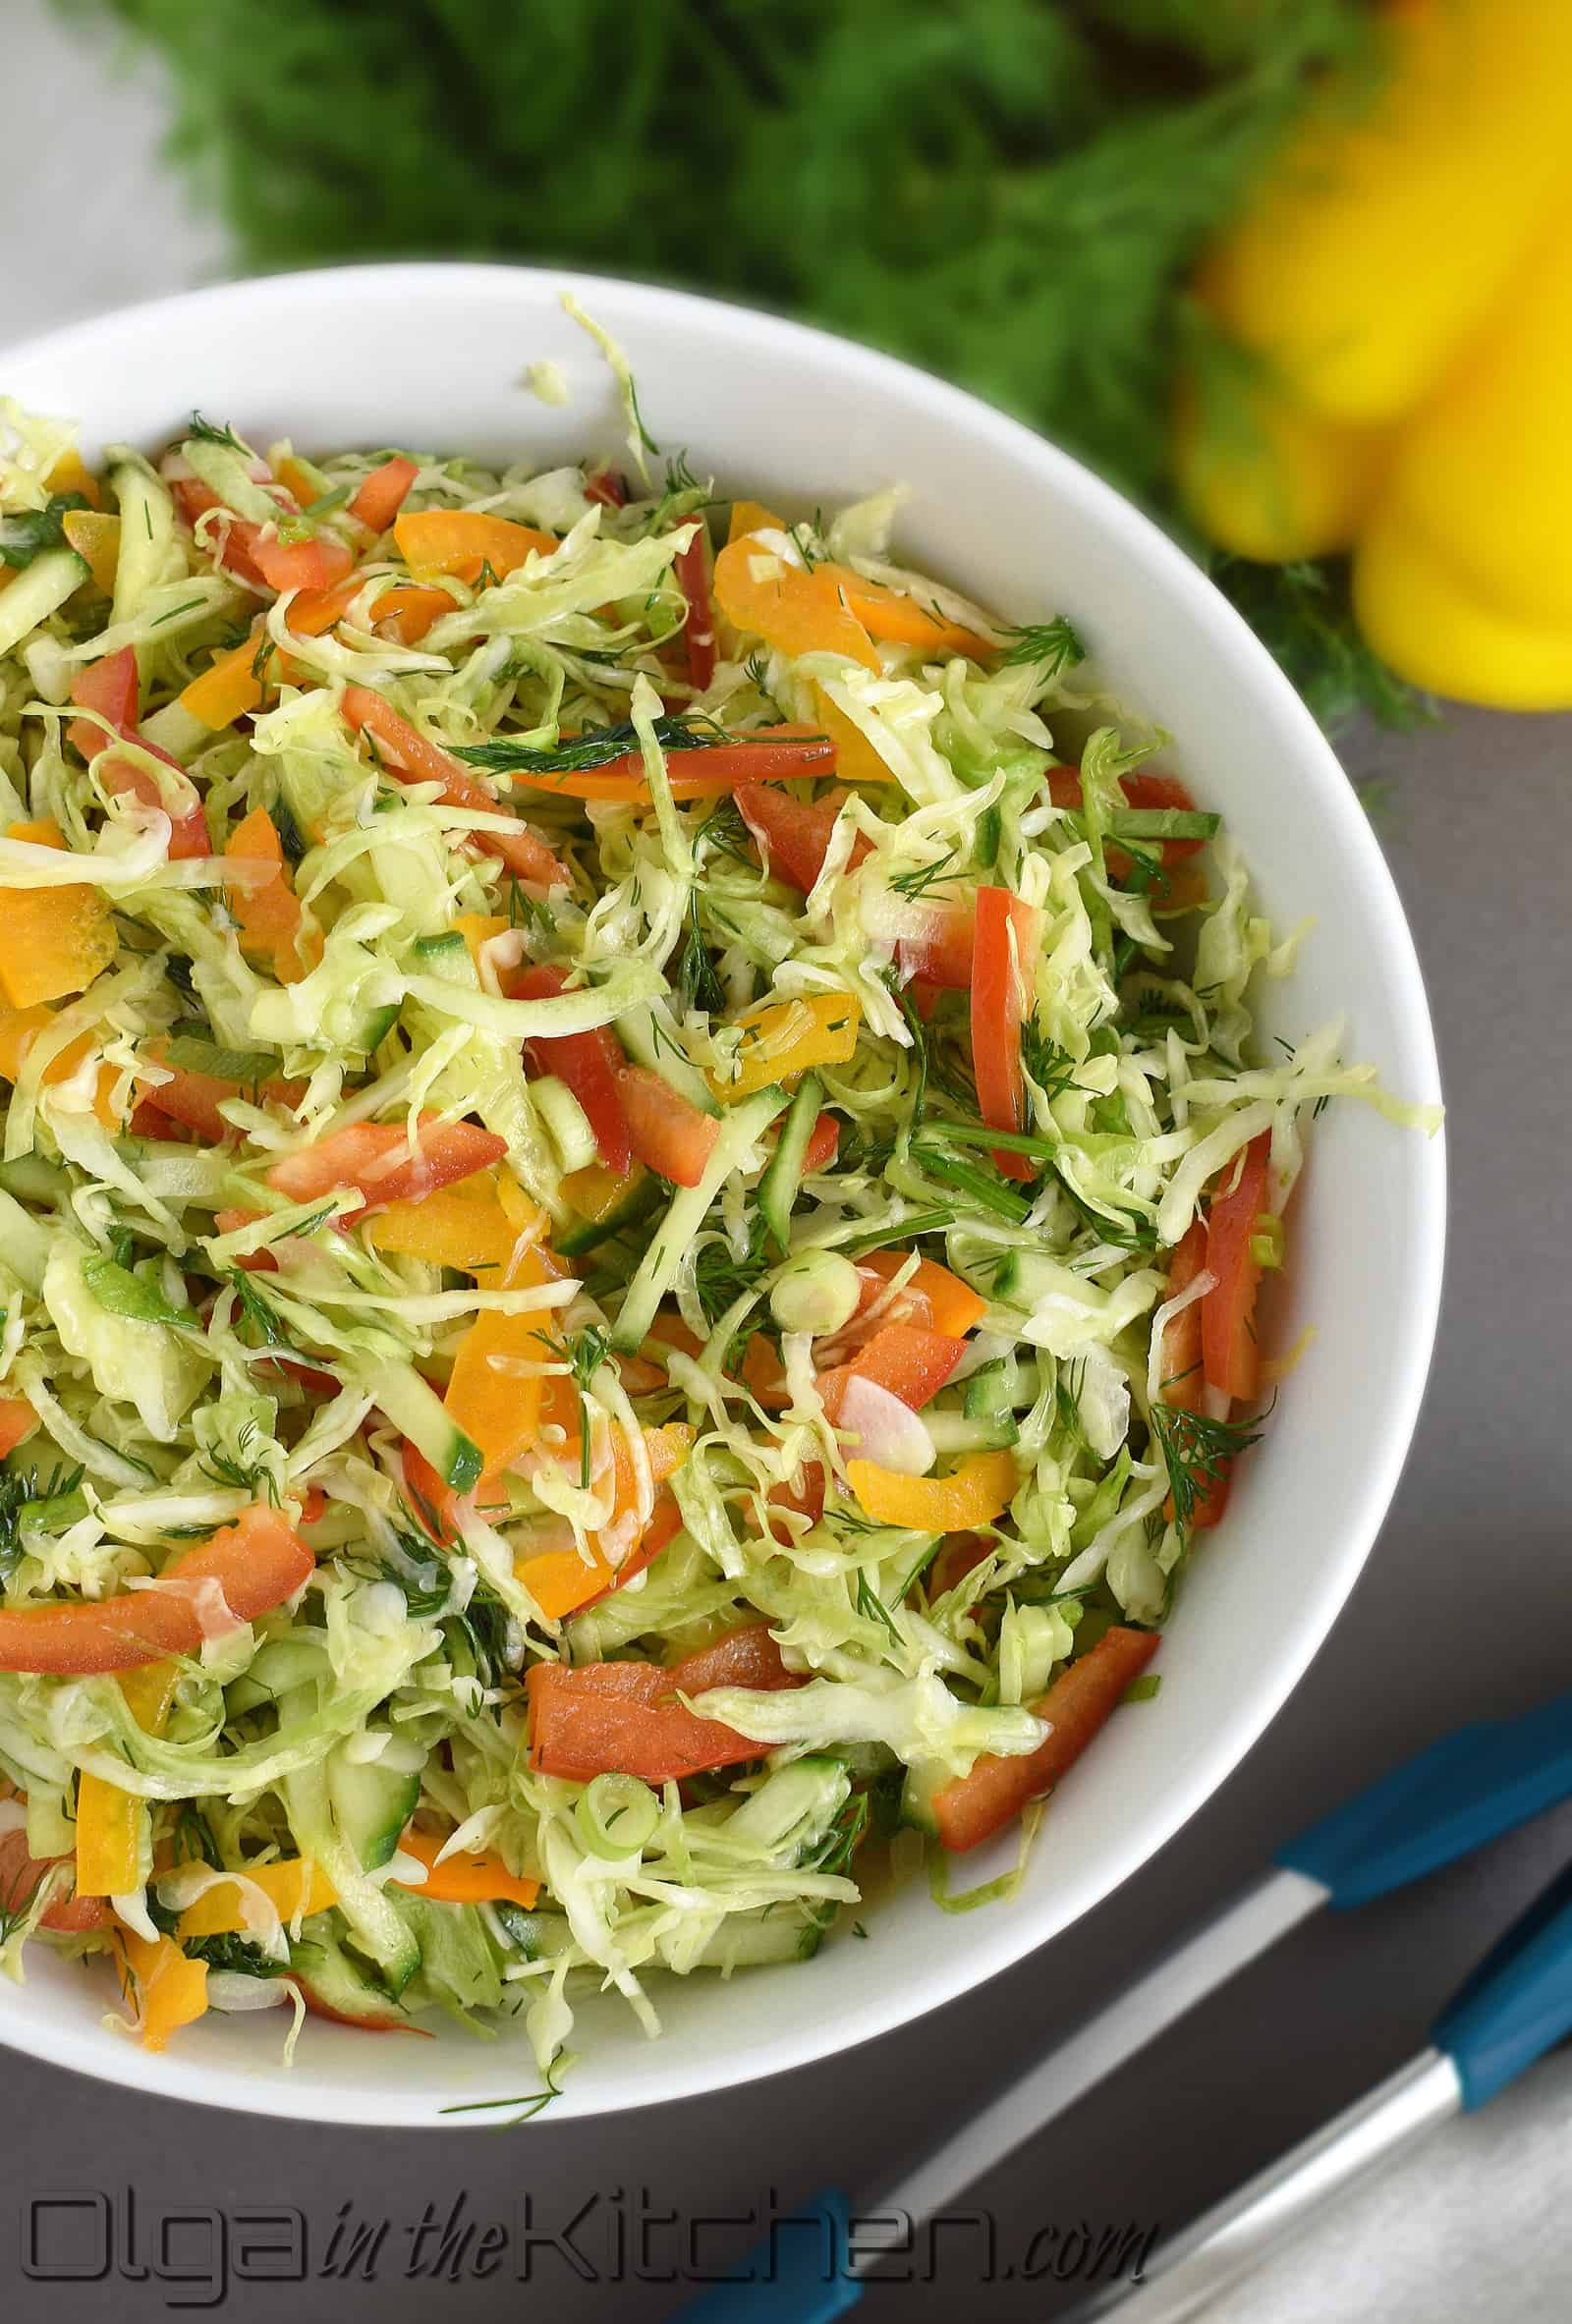 Cabbage Pepper Salad: easy to make, simple ingredients, very healthy and super delicious!   olgainthekitchen.com